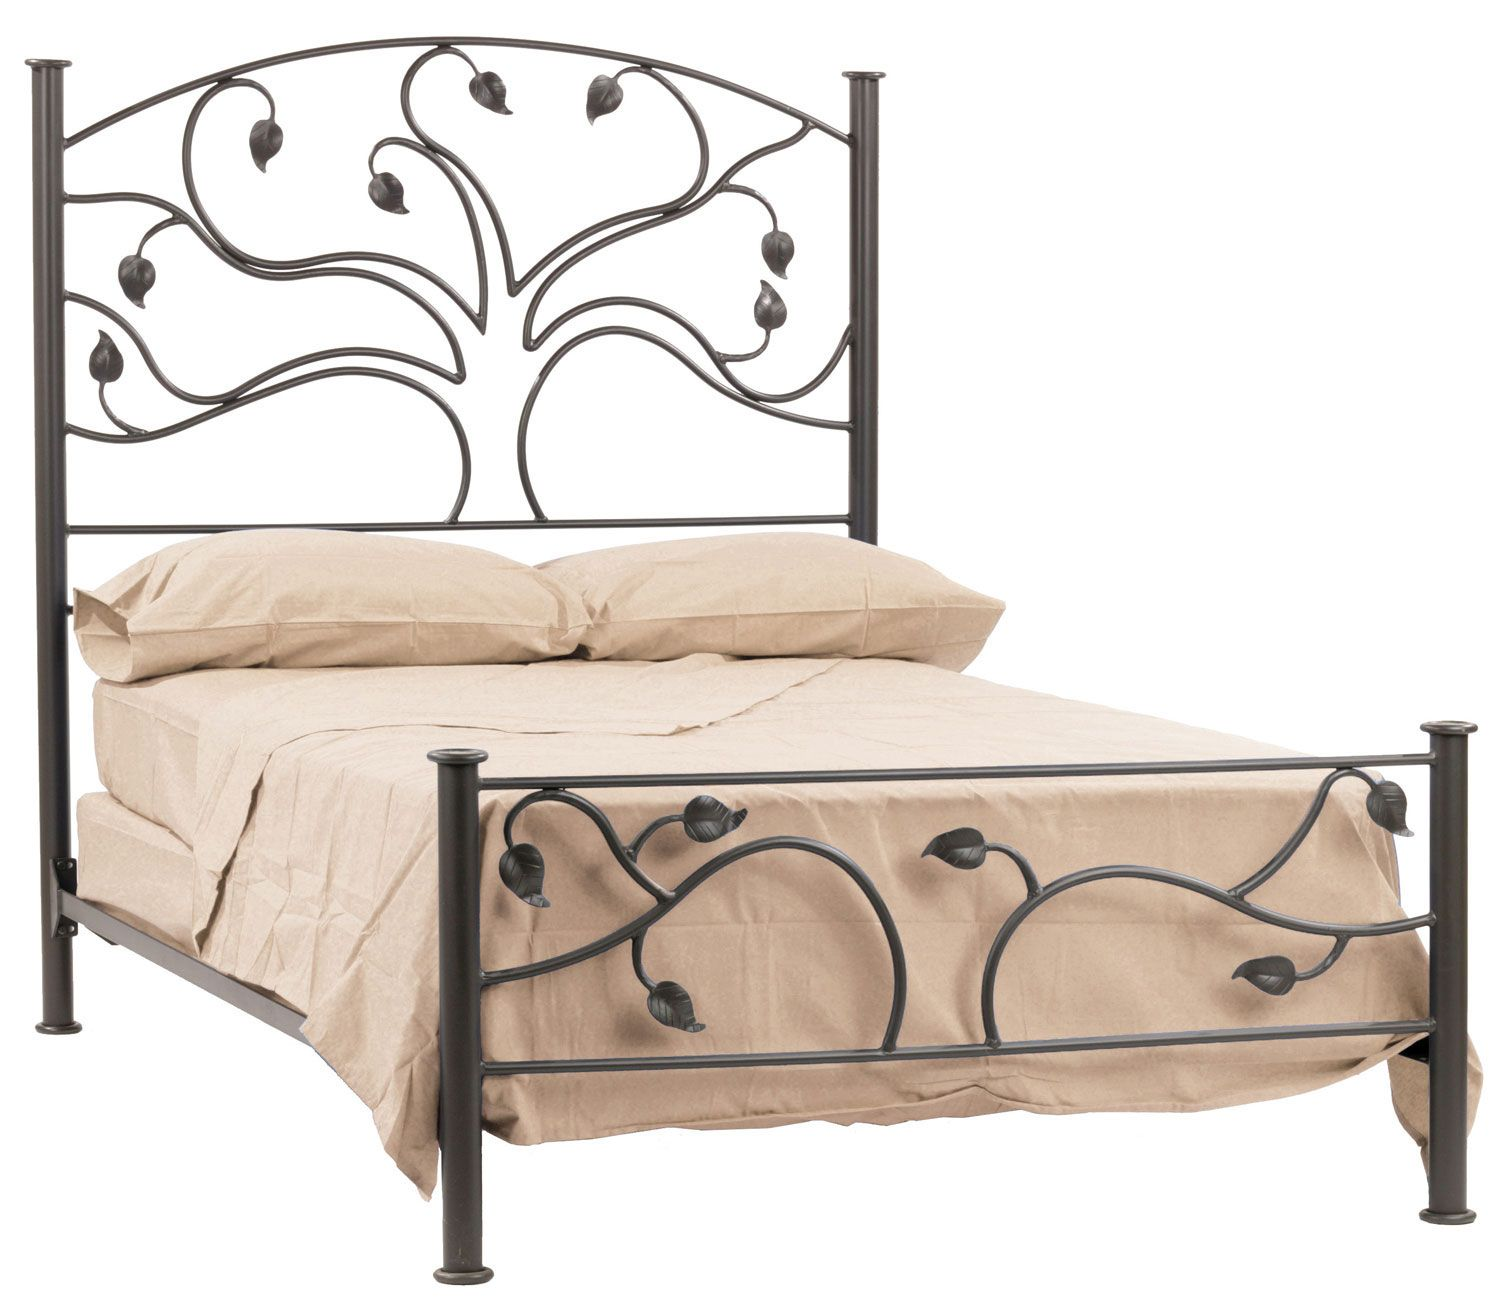 Stone County Ironworks Live Oak Bed King Size Complete